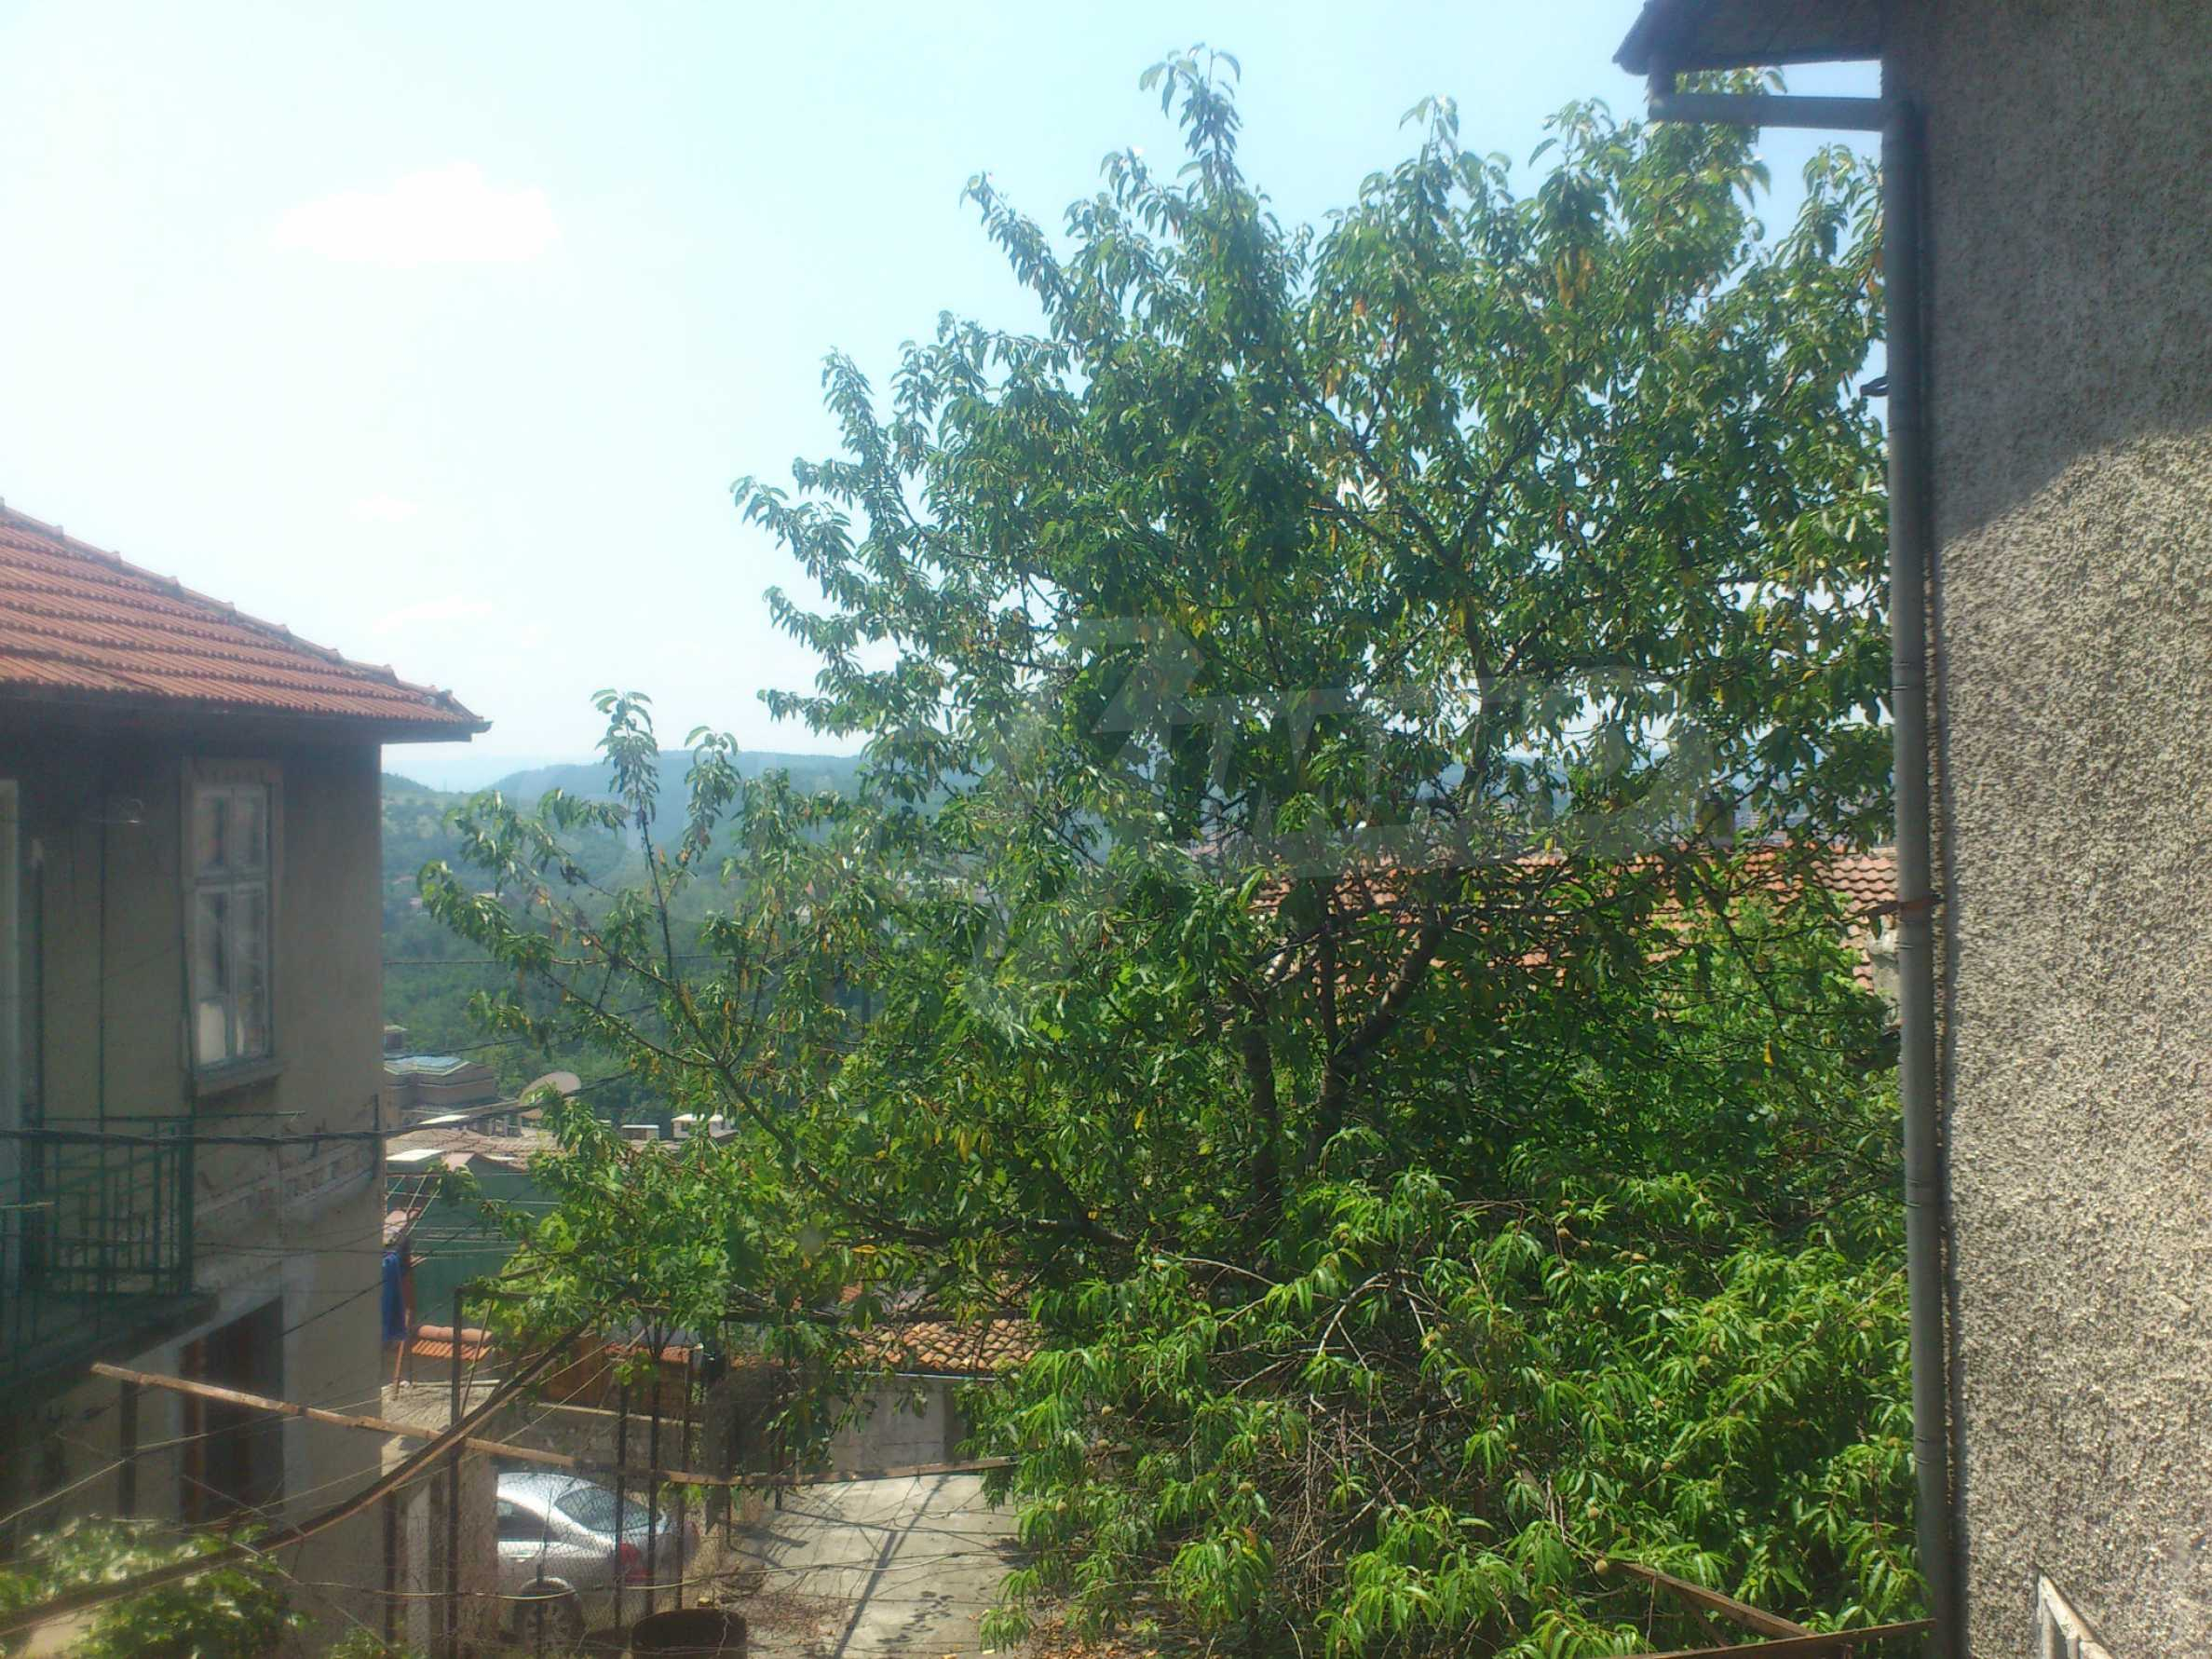 Traditional, spacious house located in the old part of Veliko Tarnovo 5